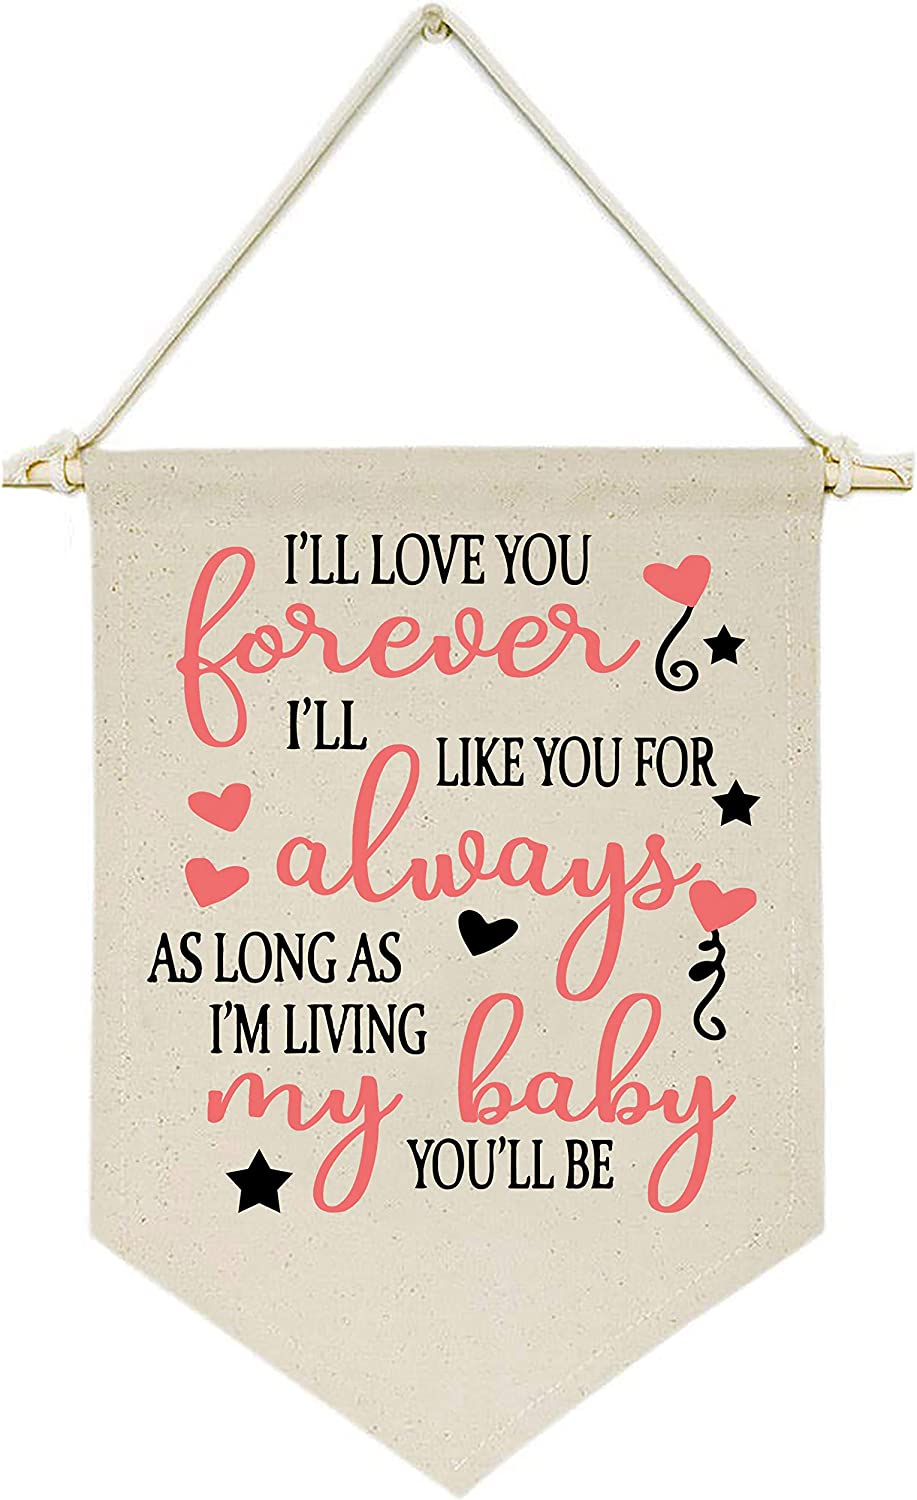 Topthink I'll Love You Forever,I'll Like You for Always,As Long As I'm Living,My Baby You'll Be - Hanging Flag Banner Wall Sign Decor Gift for Baby Kids Girl Boy Nursery Teen Room Front Door